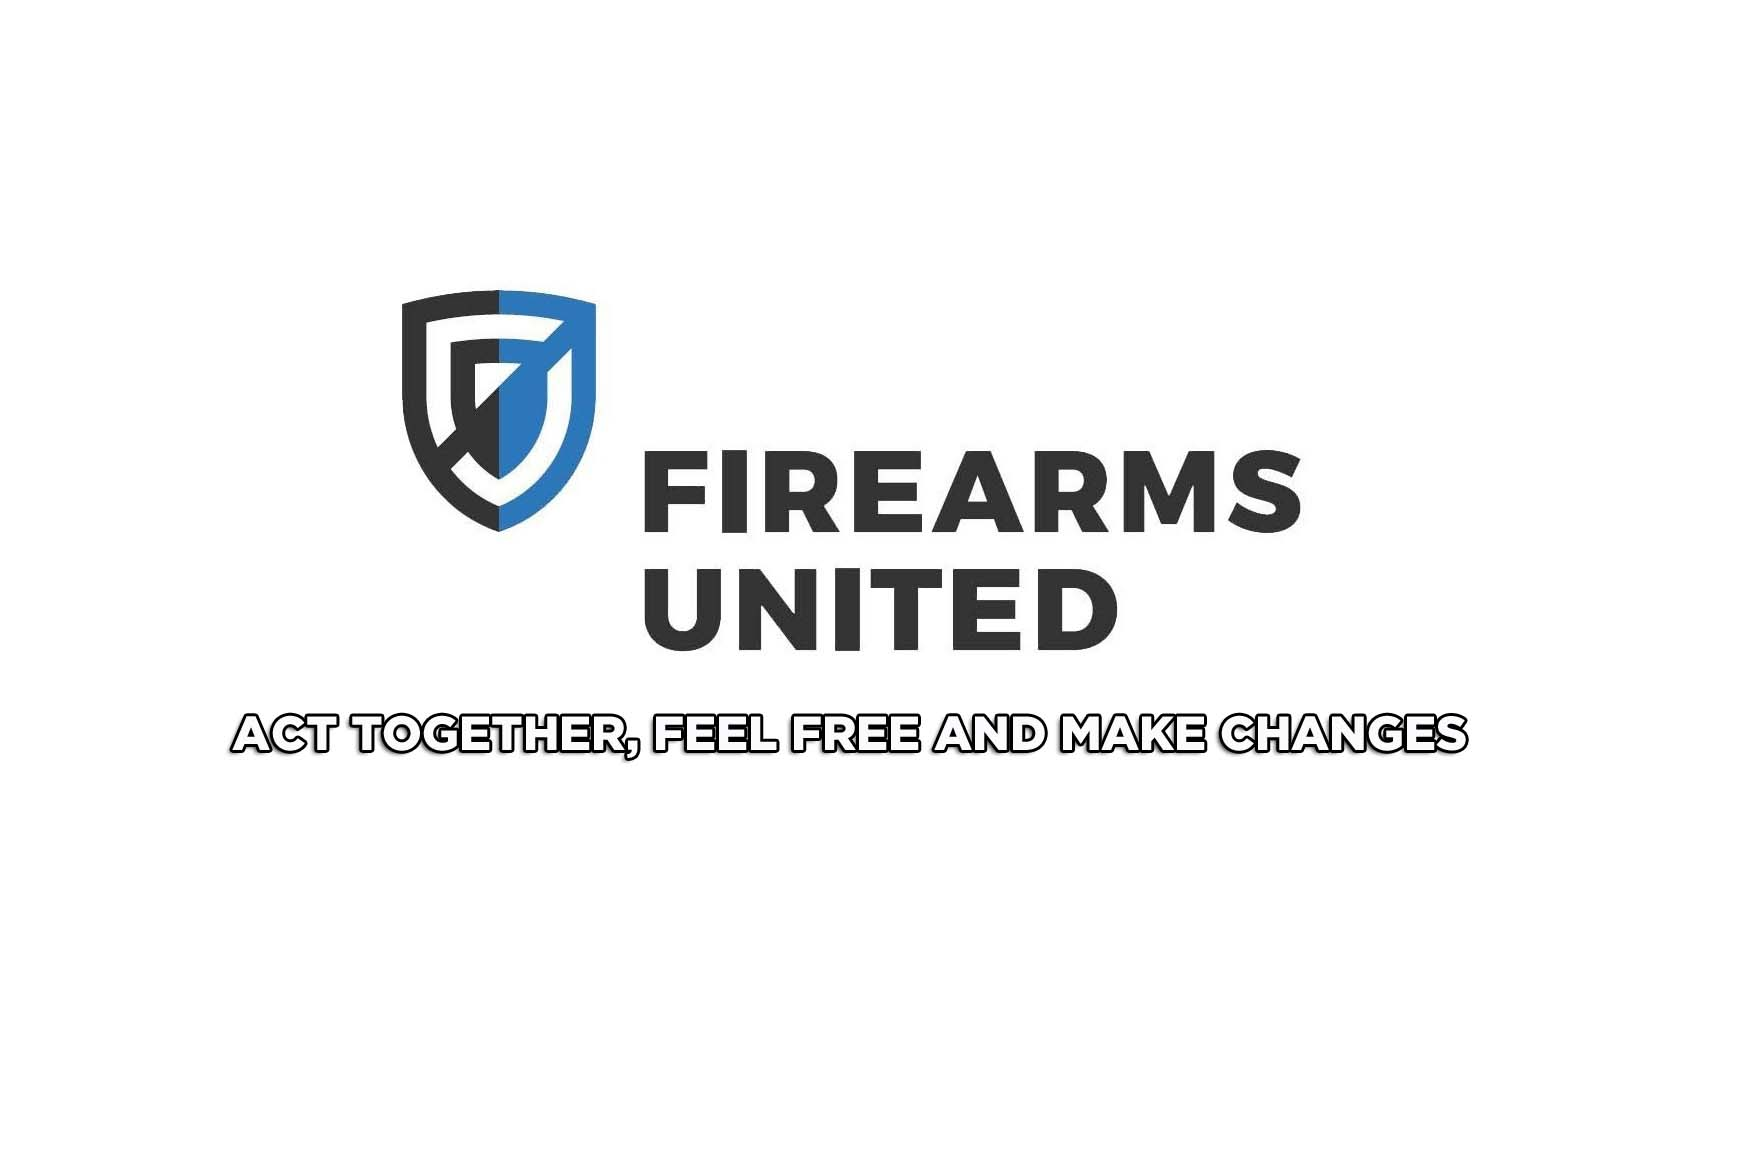 FIREARMS OWNER'S MANIFESTO - Firearms United Network - 26 juillet 2019 44816310